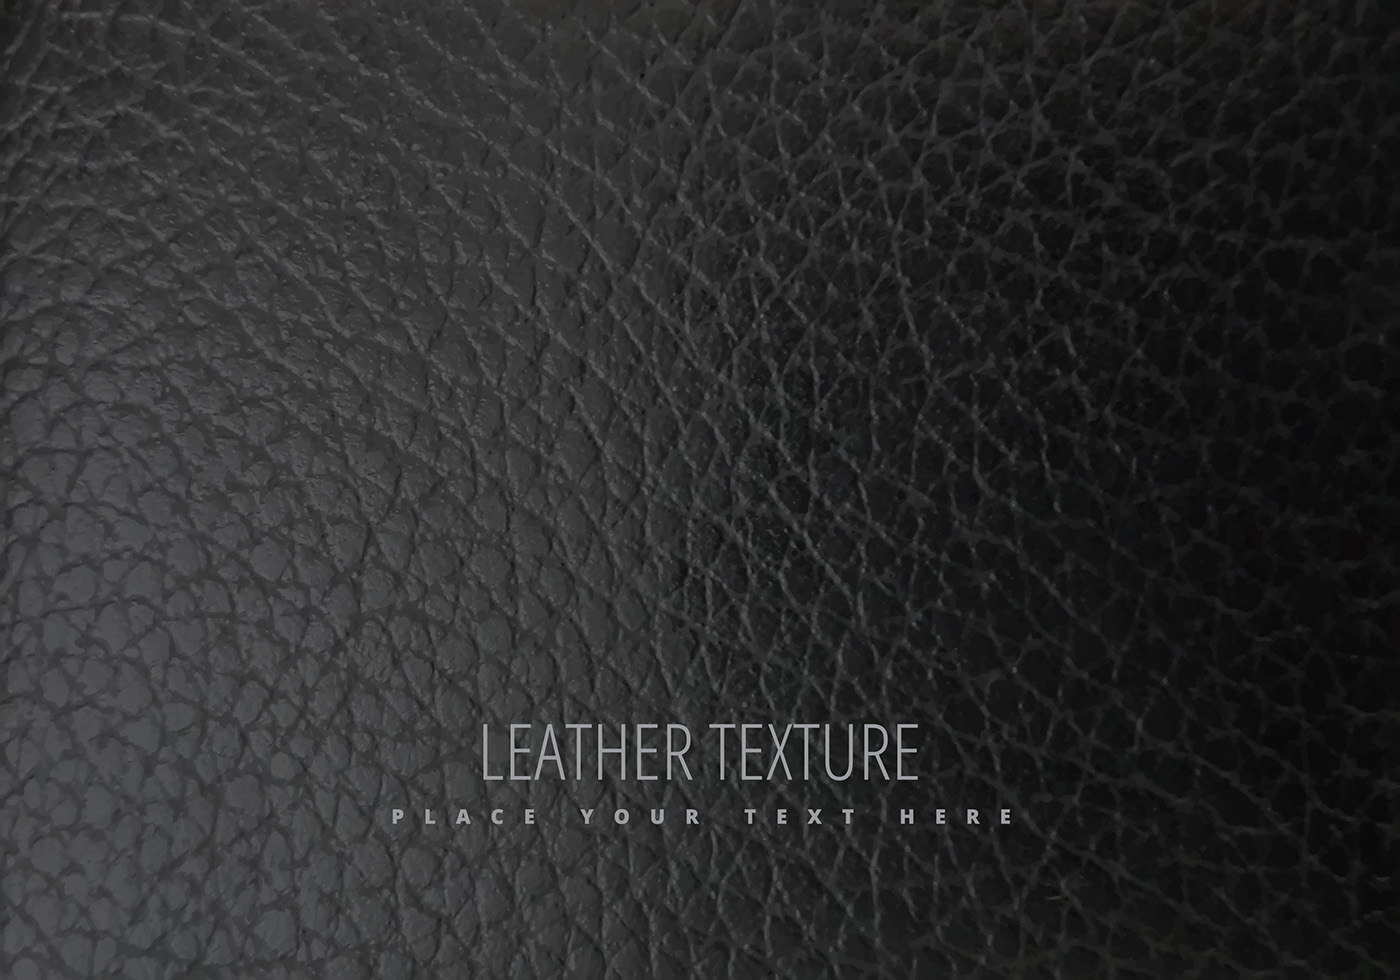 Leather texture background - Download Free Vector Art ...